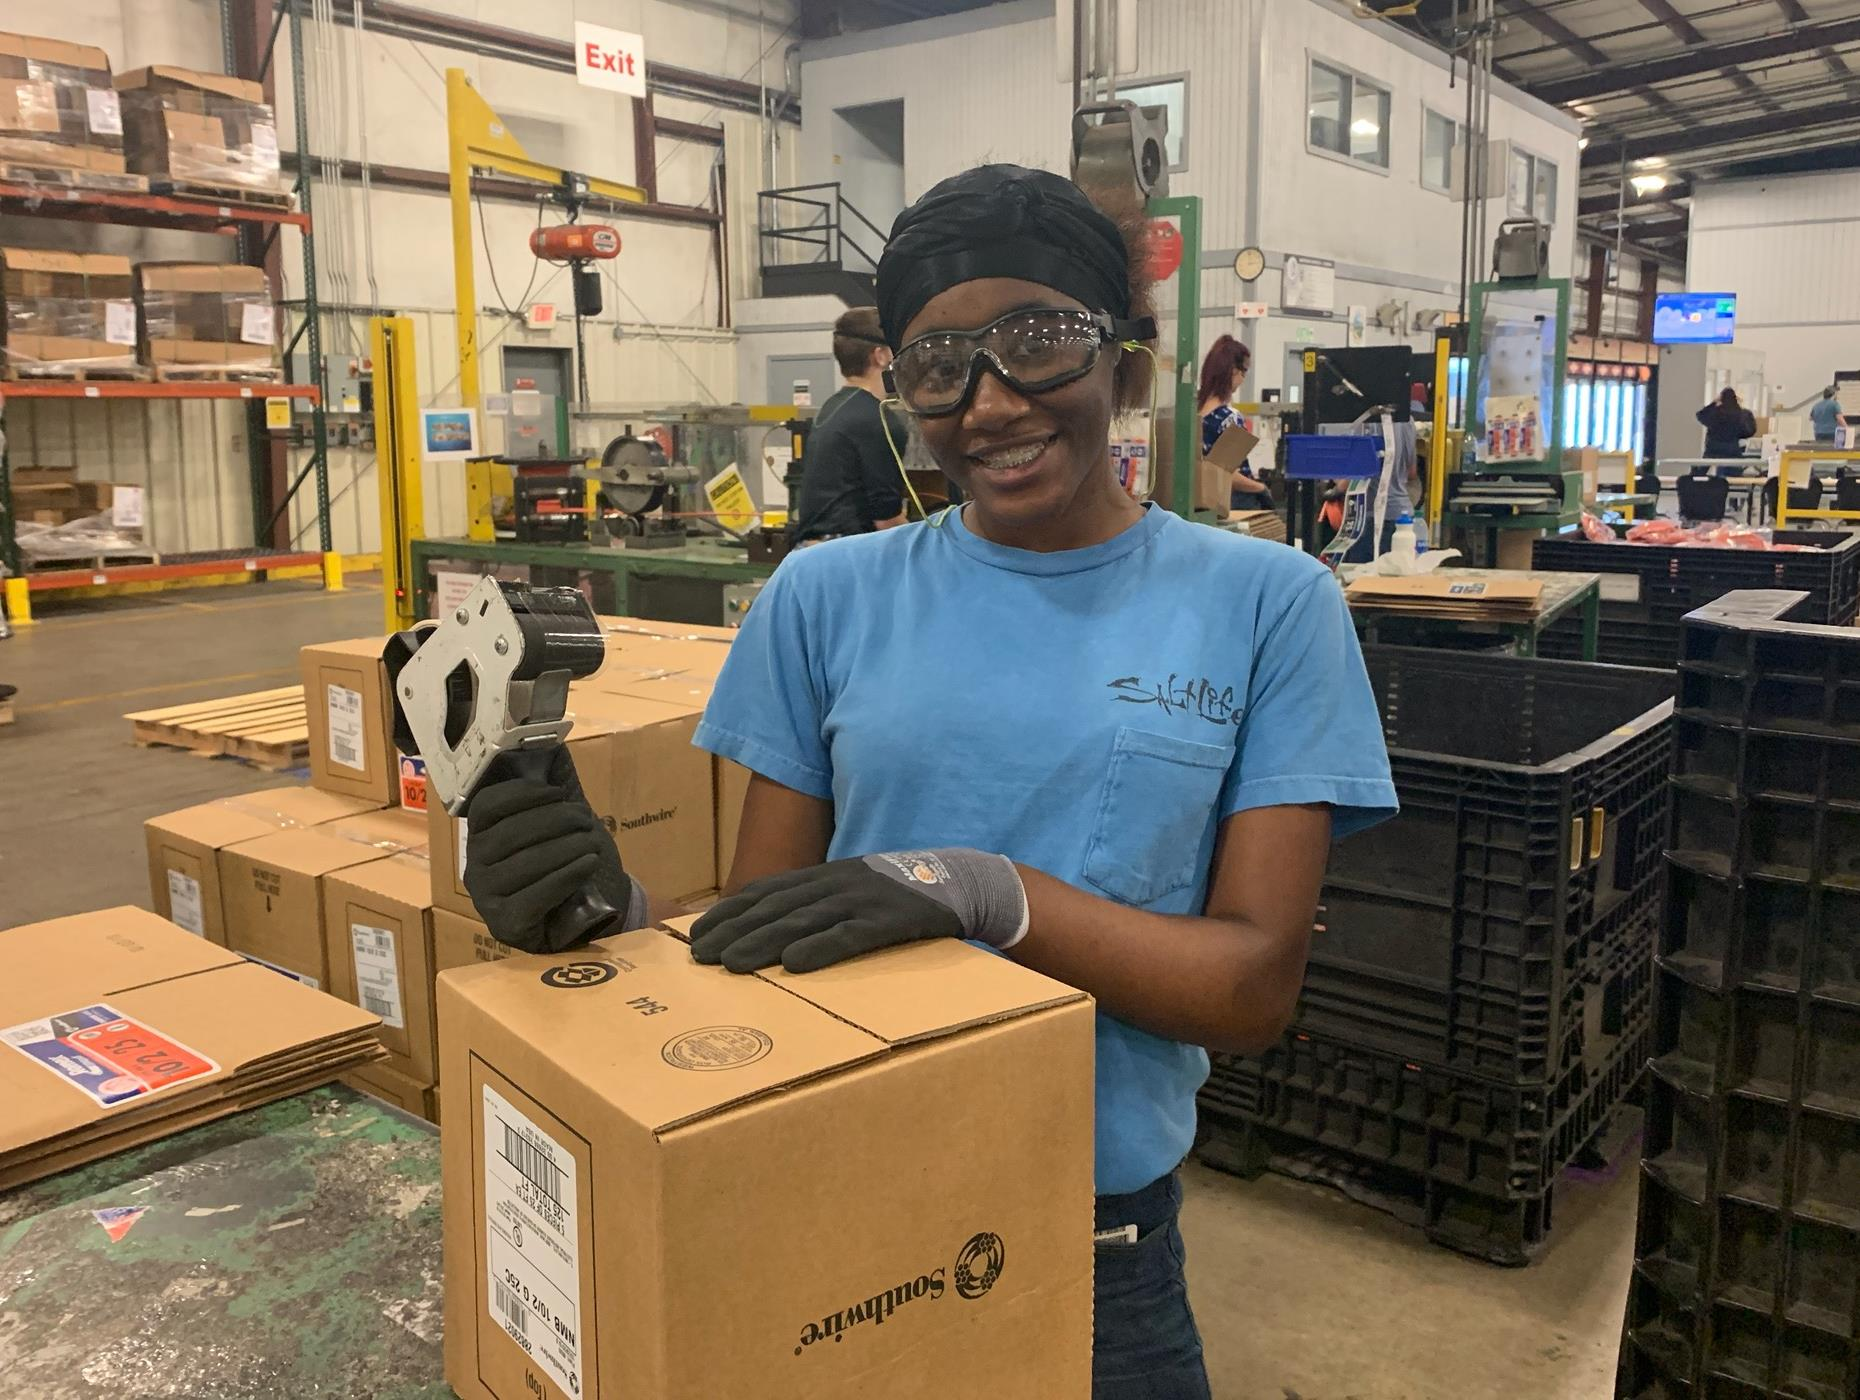 Student complete final packaging of product before shipment to customers